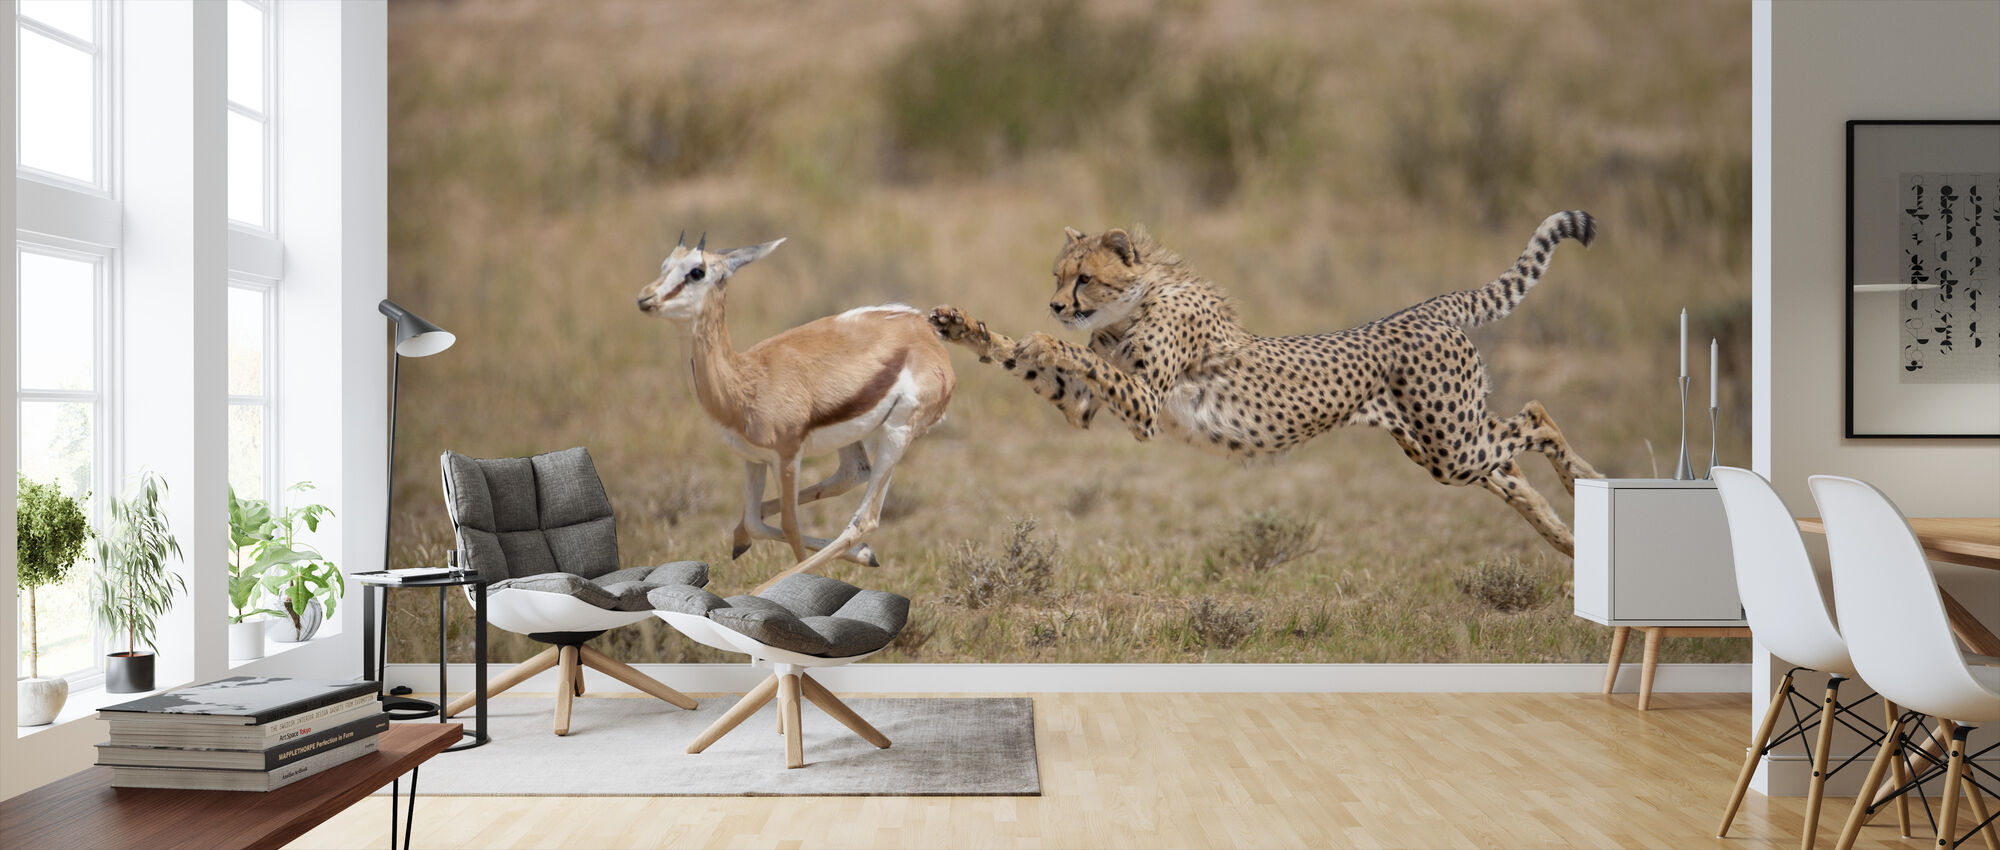 Cheetah Chasing Springbok - Wallpaper - Living Room